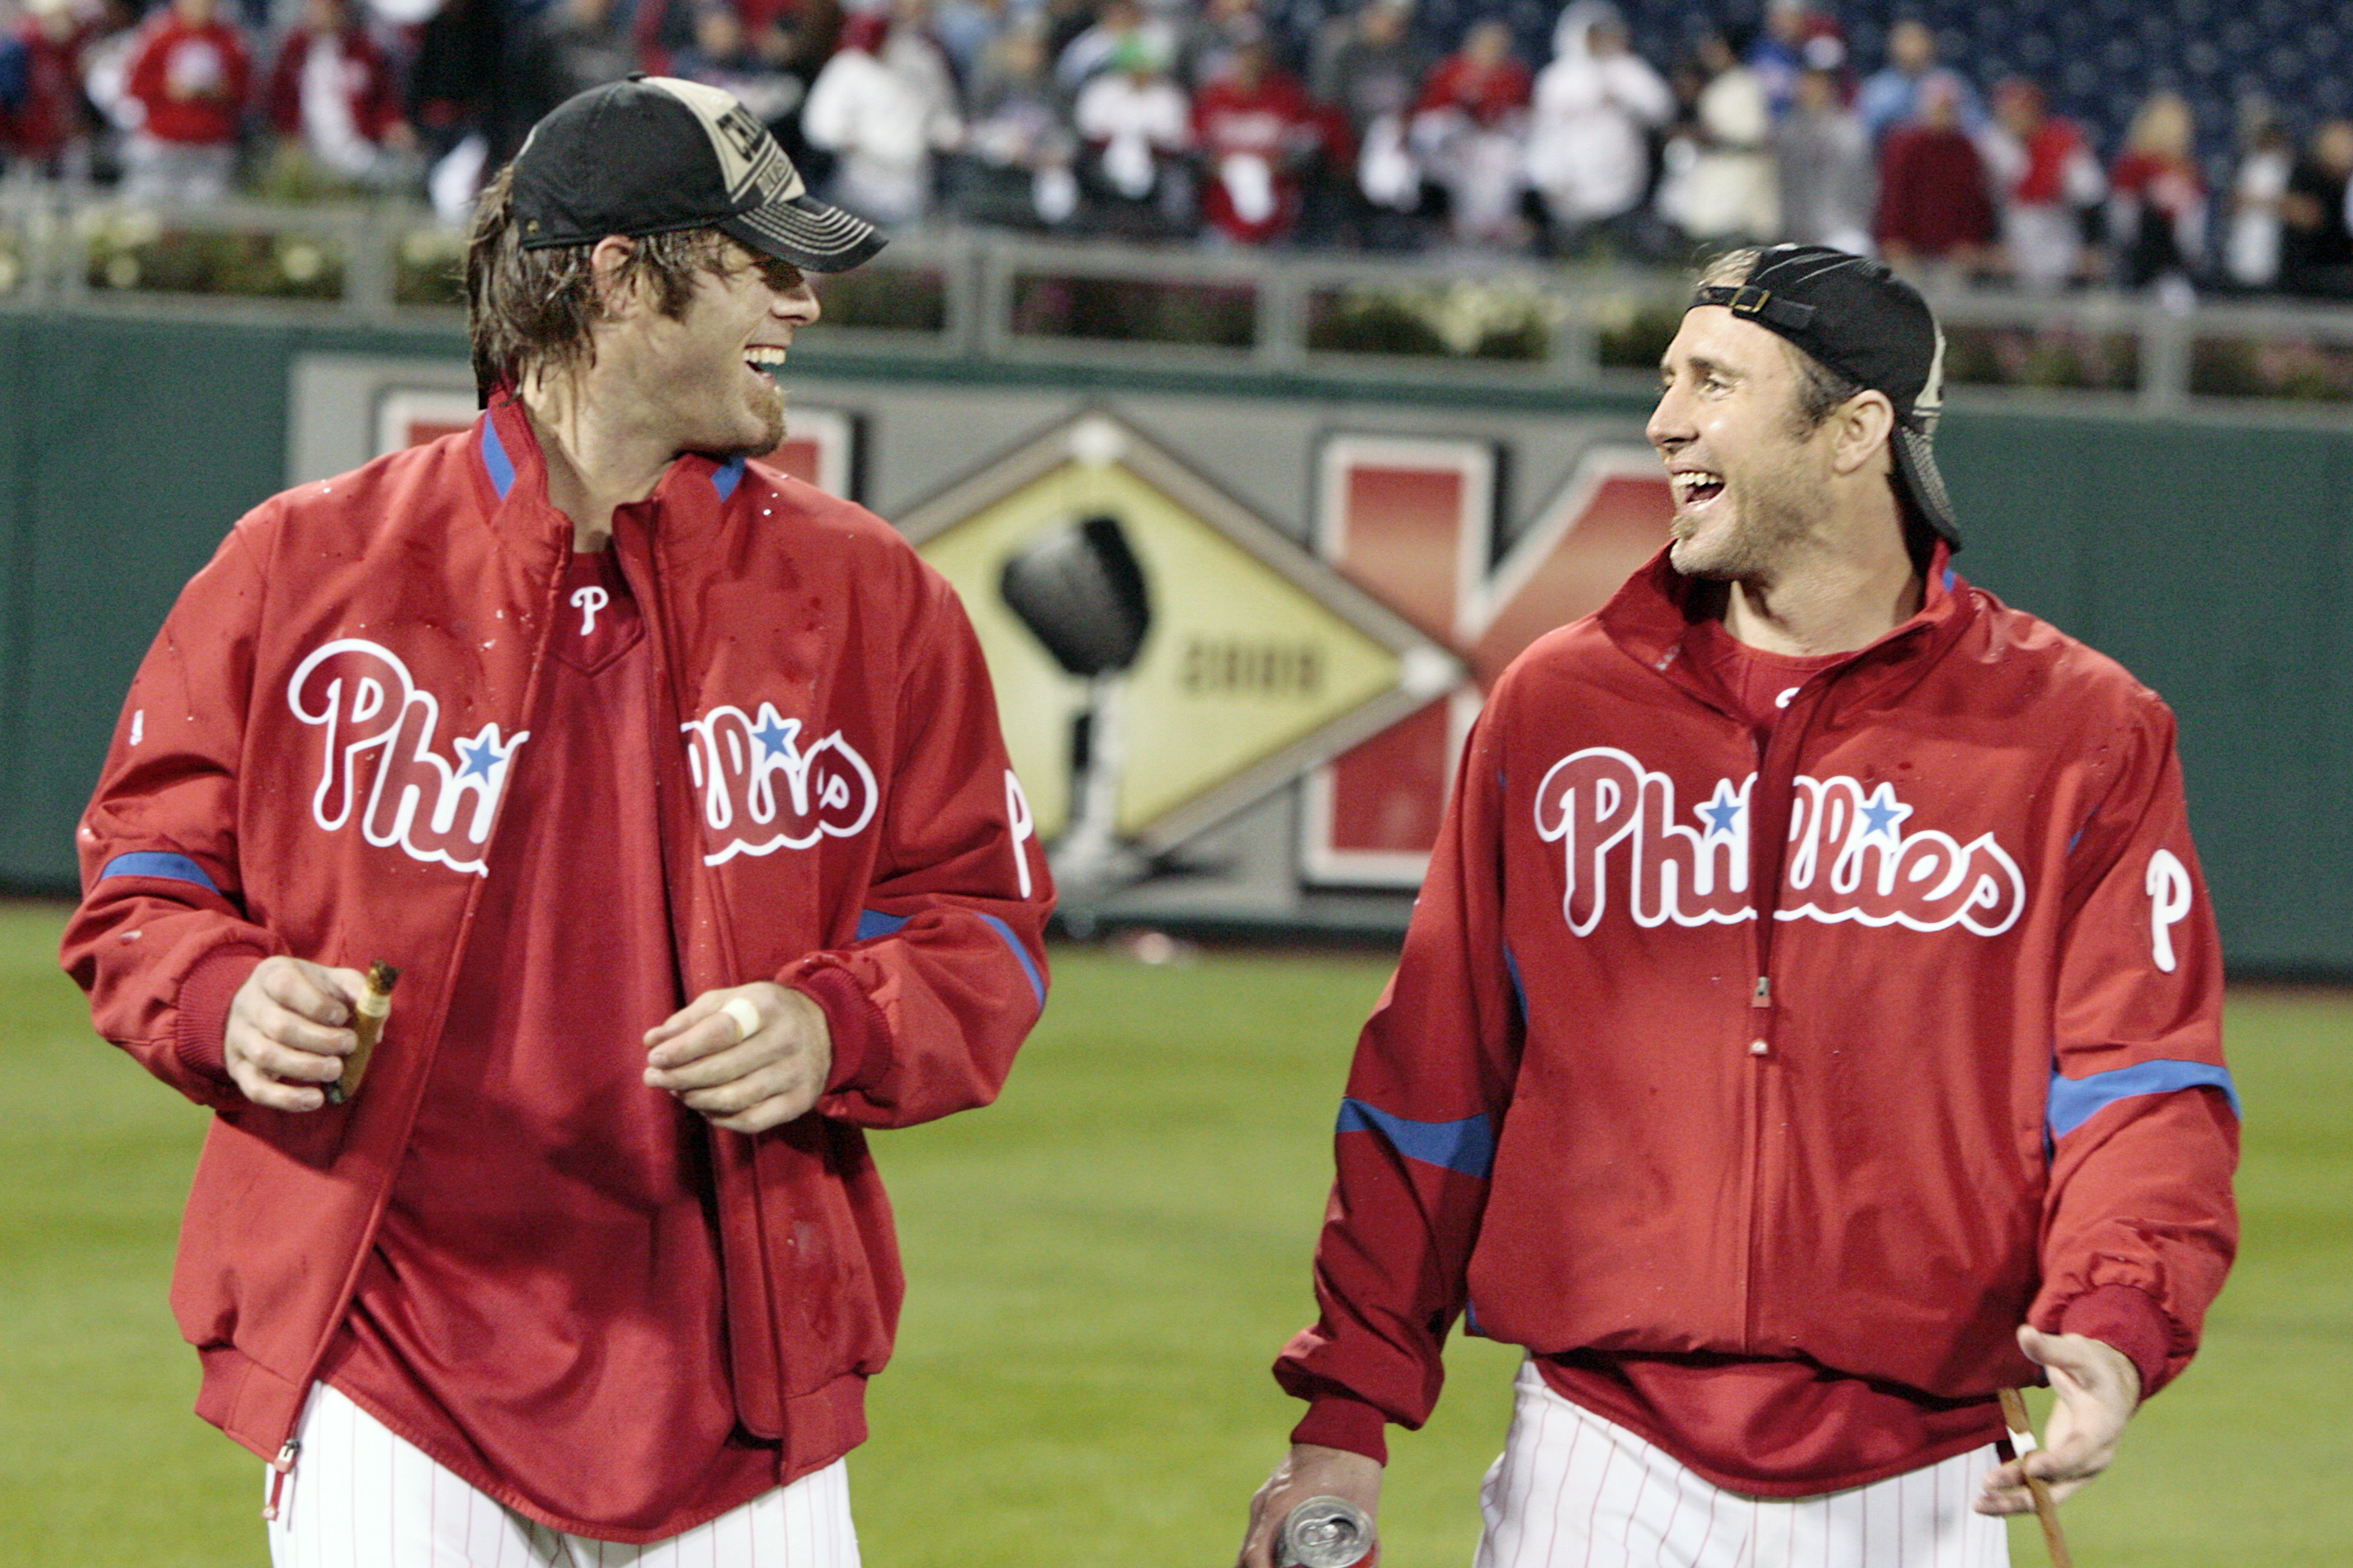 Jayson Werth and Chase Utley celebrating after winning the N.L. East division title in 2009.